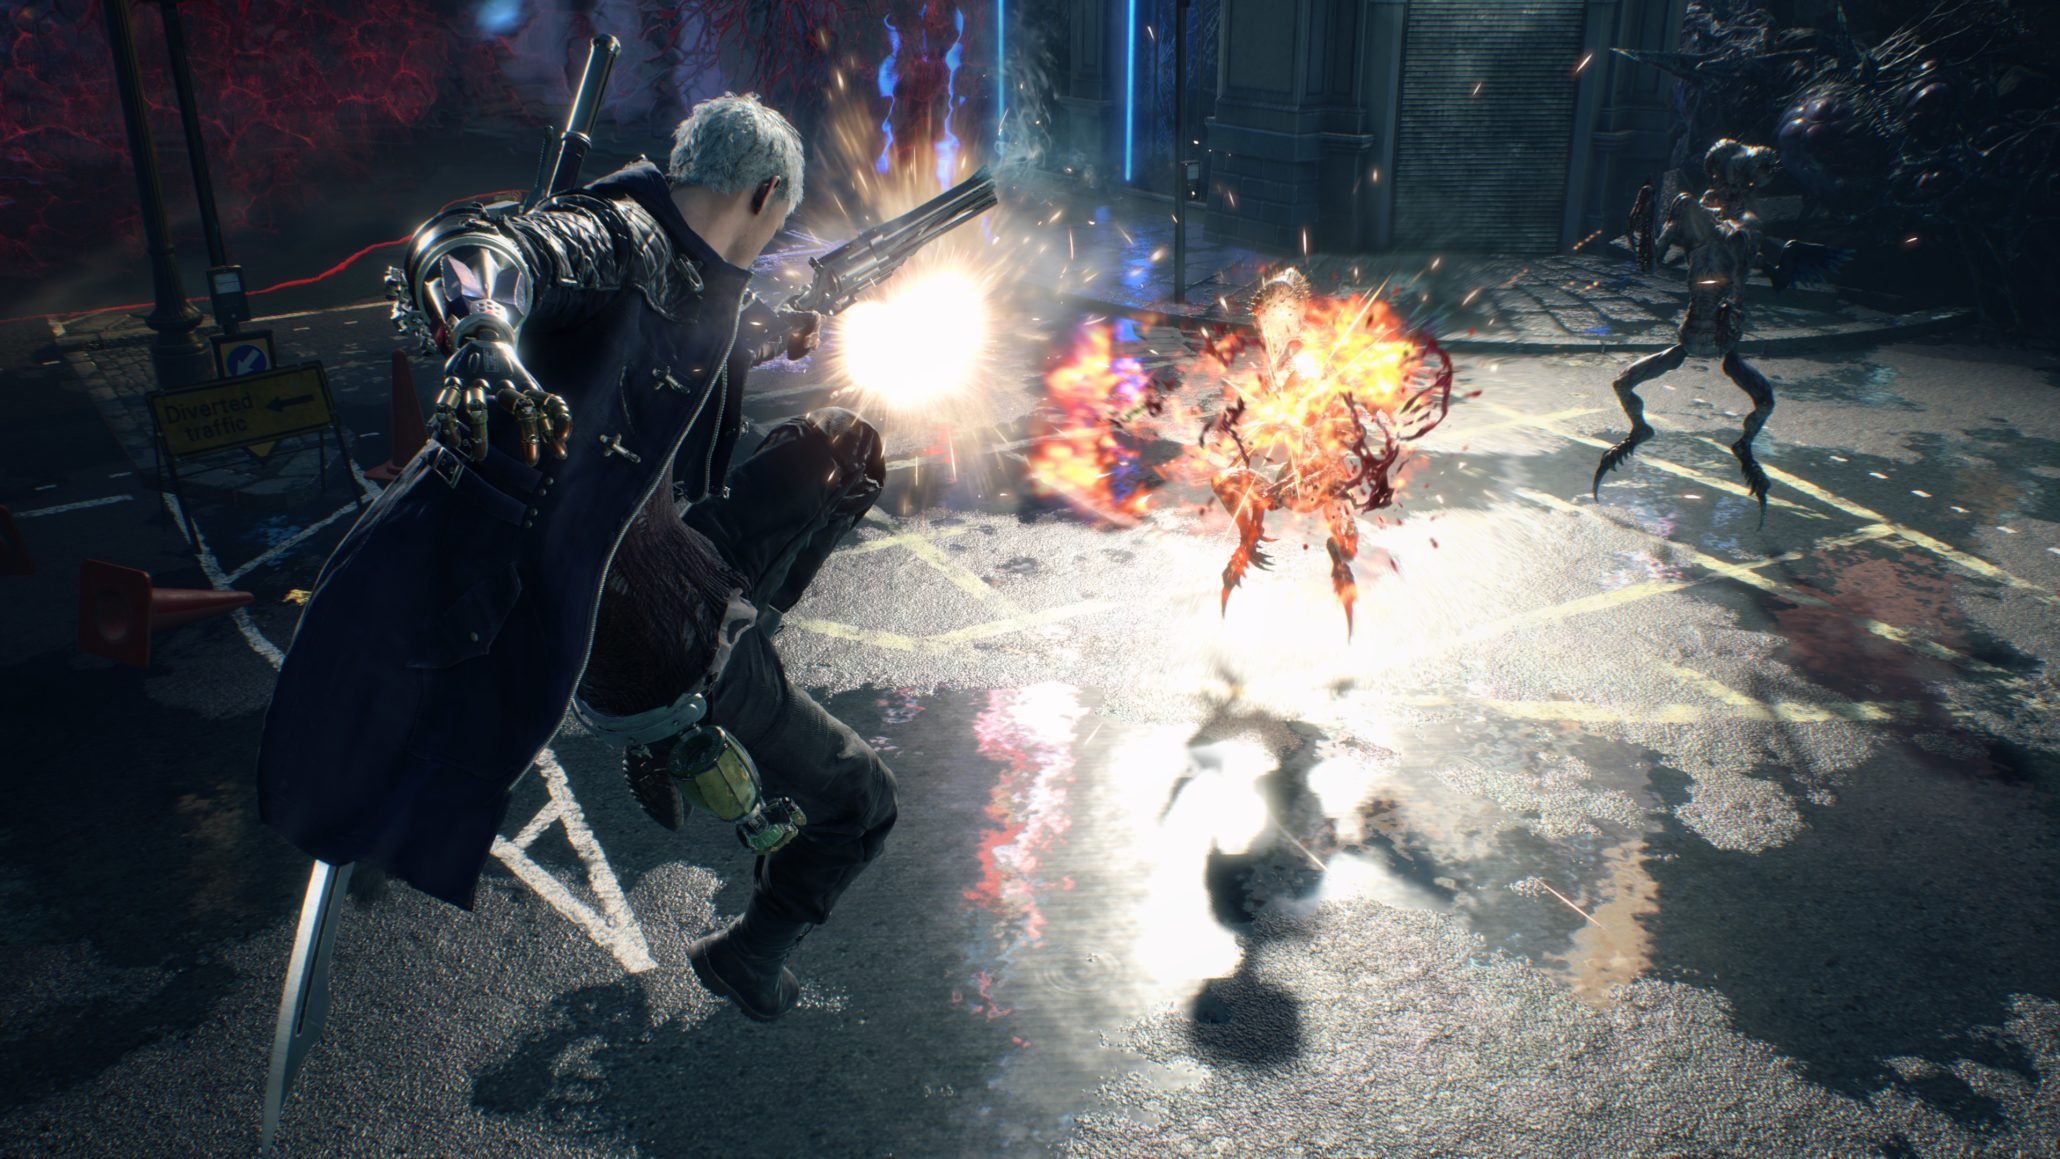 The first and easiest difficulty setting available in Devil May Cry 5 is Human.